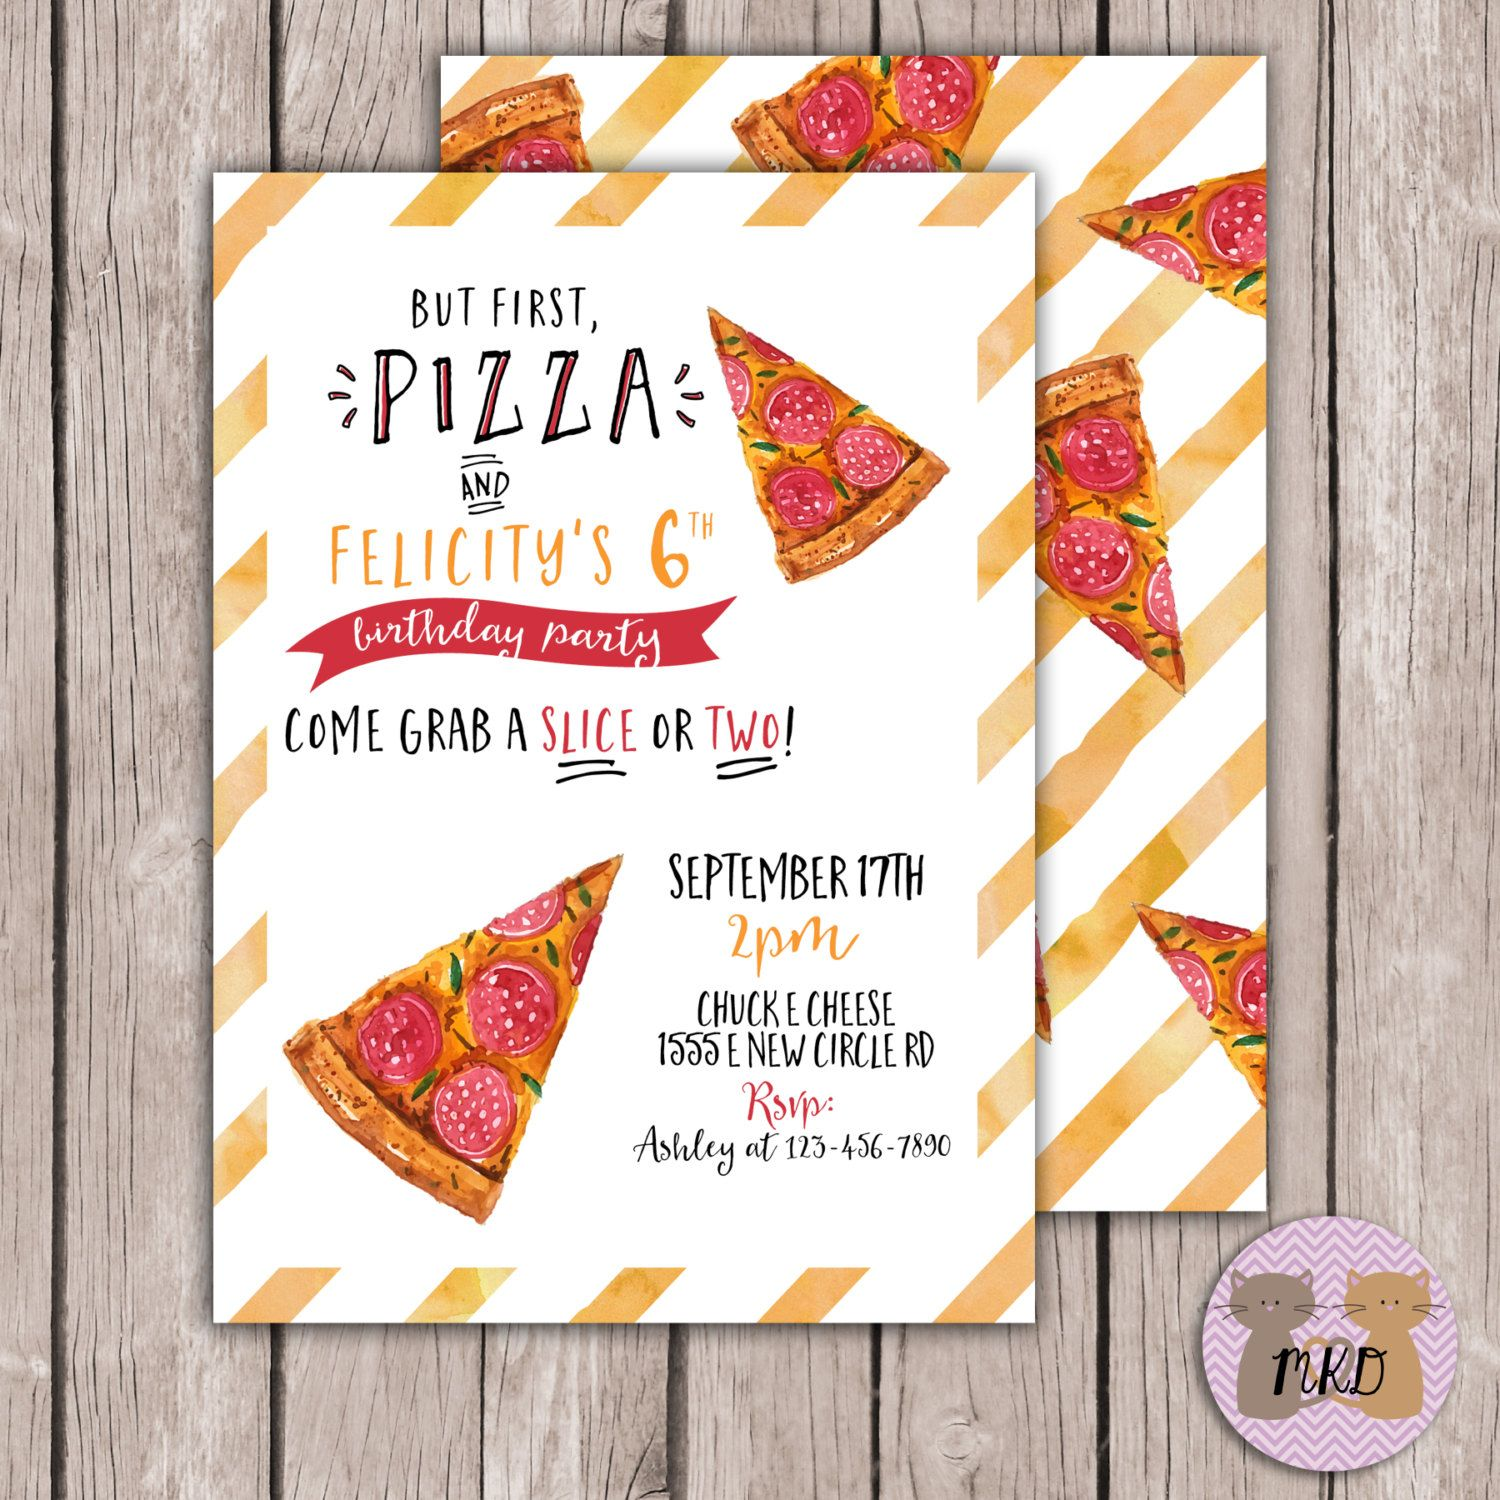 Chalkboard pizza party invitation primary colors boys chalkboard pizza party invitation primary colors boys chalkboard birthday invitations pinterest pizza party primary colors and party invitations stopboris Choice Image